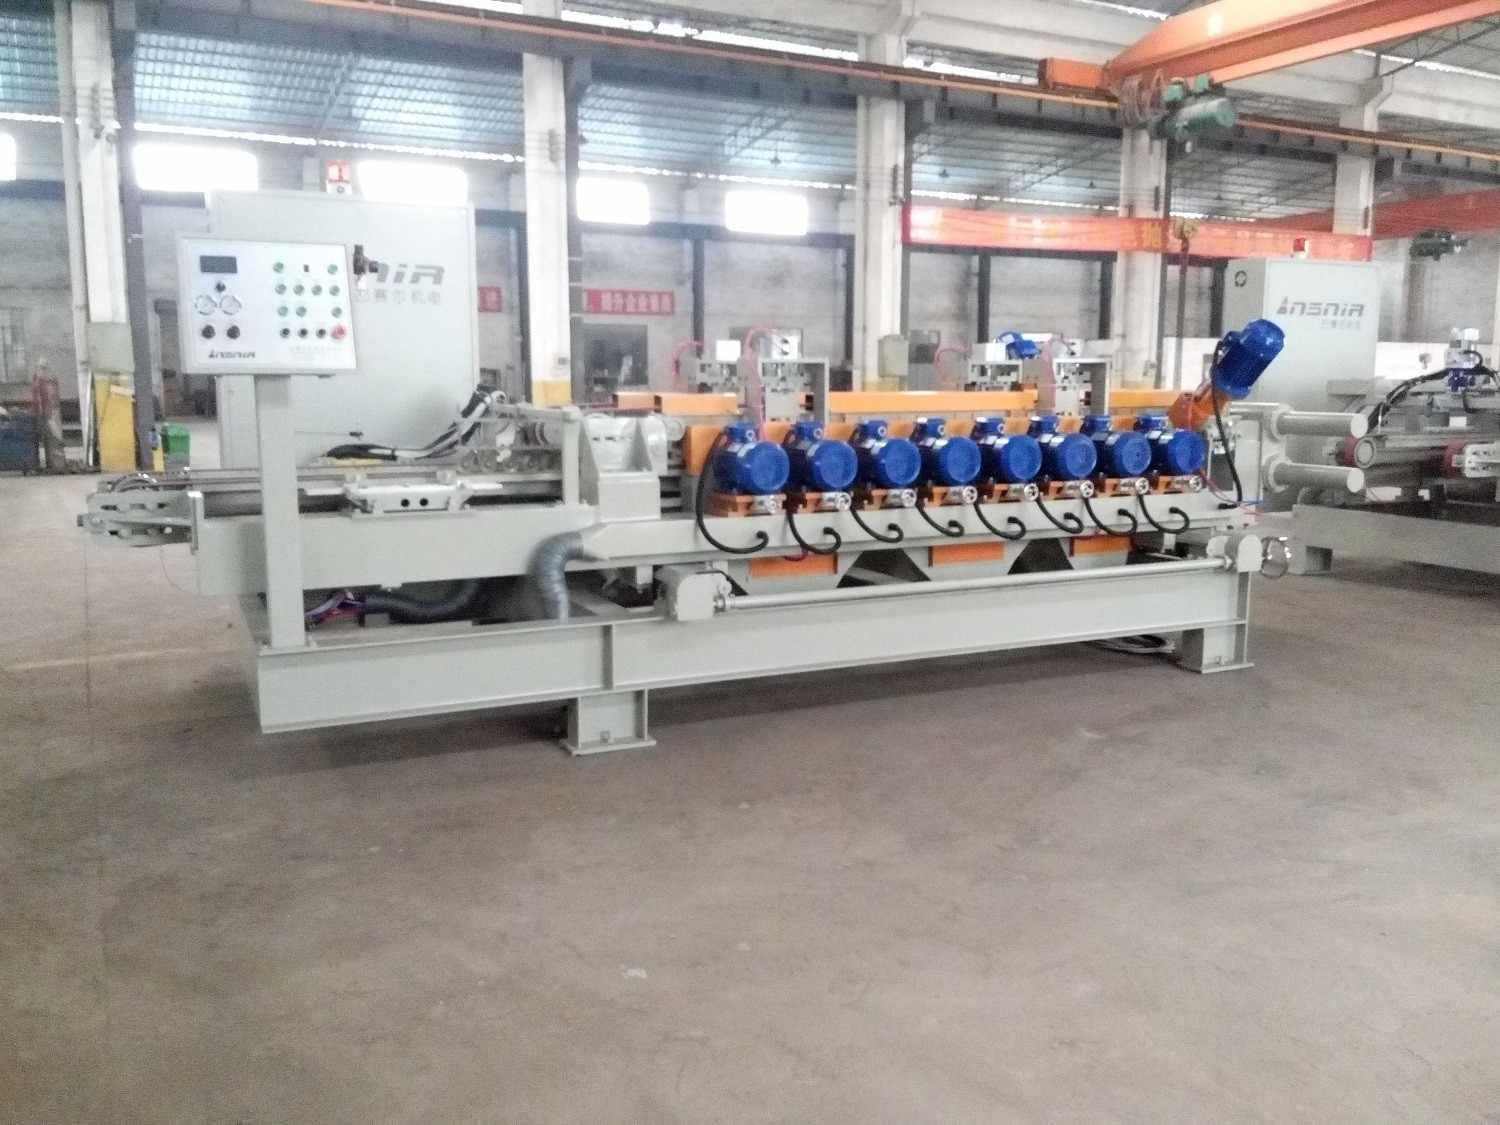 Dry squaring machine bsm85081 ceramic tile machine squaring basair offers our clients with excellent tile machine ceramic tiles manufacturing machines ceramic tiles machinery suppliers by integrated dailygadgetfo Gallery